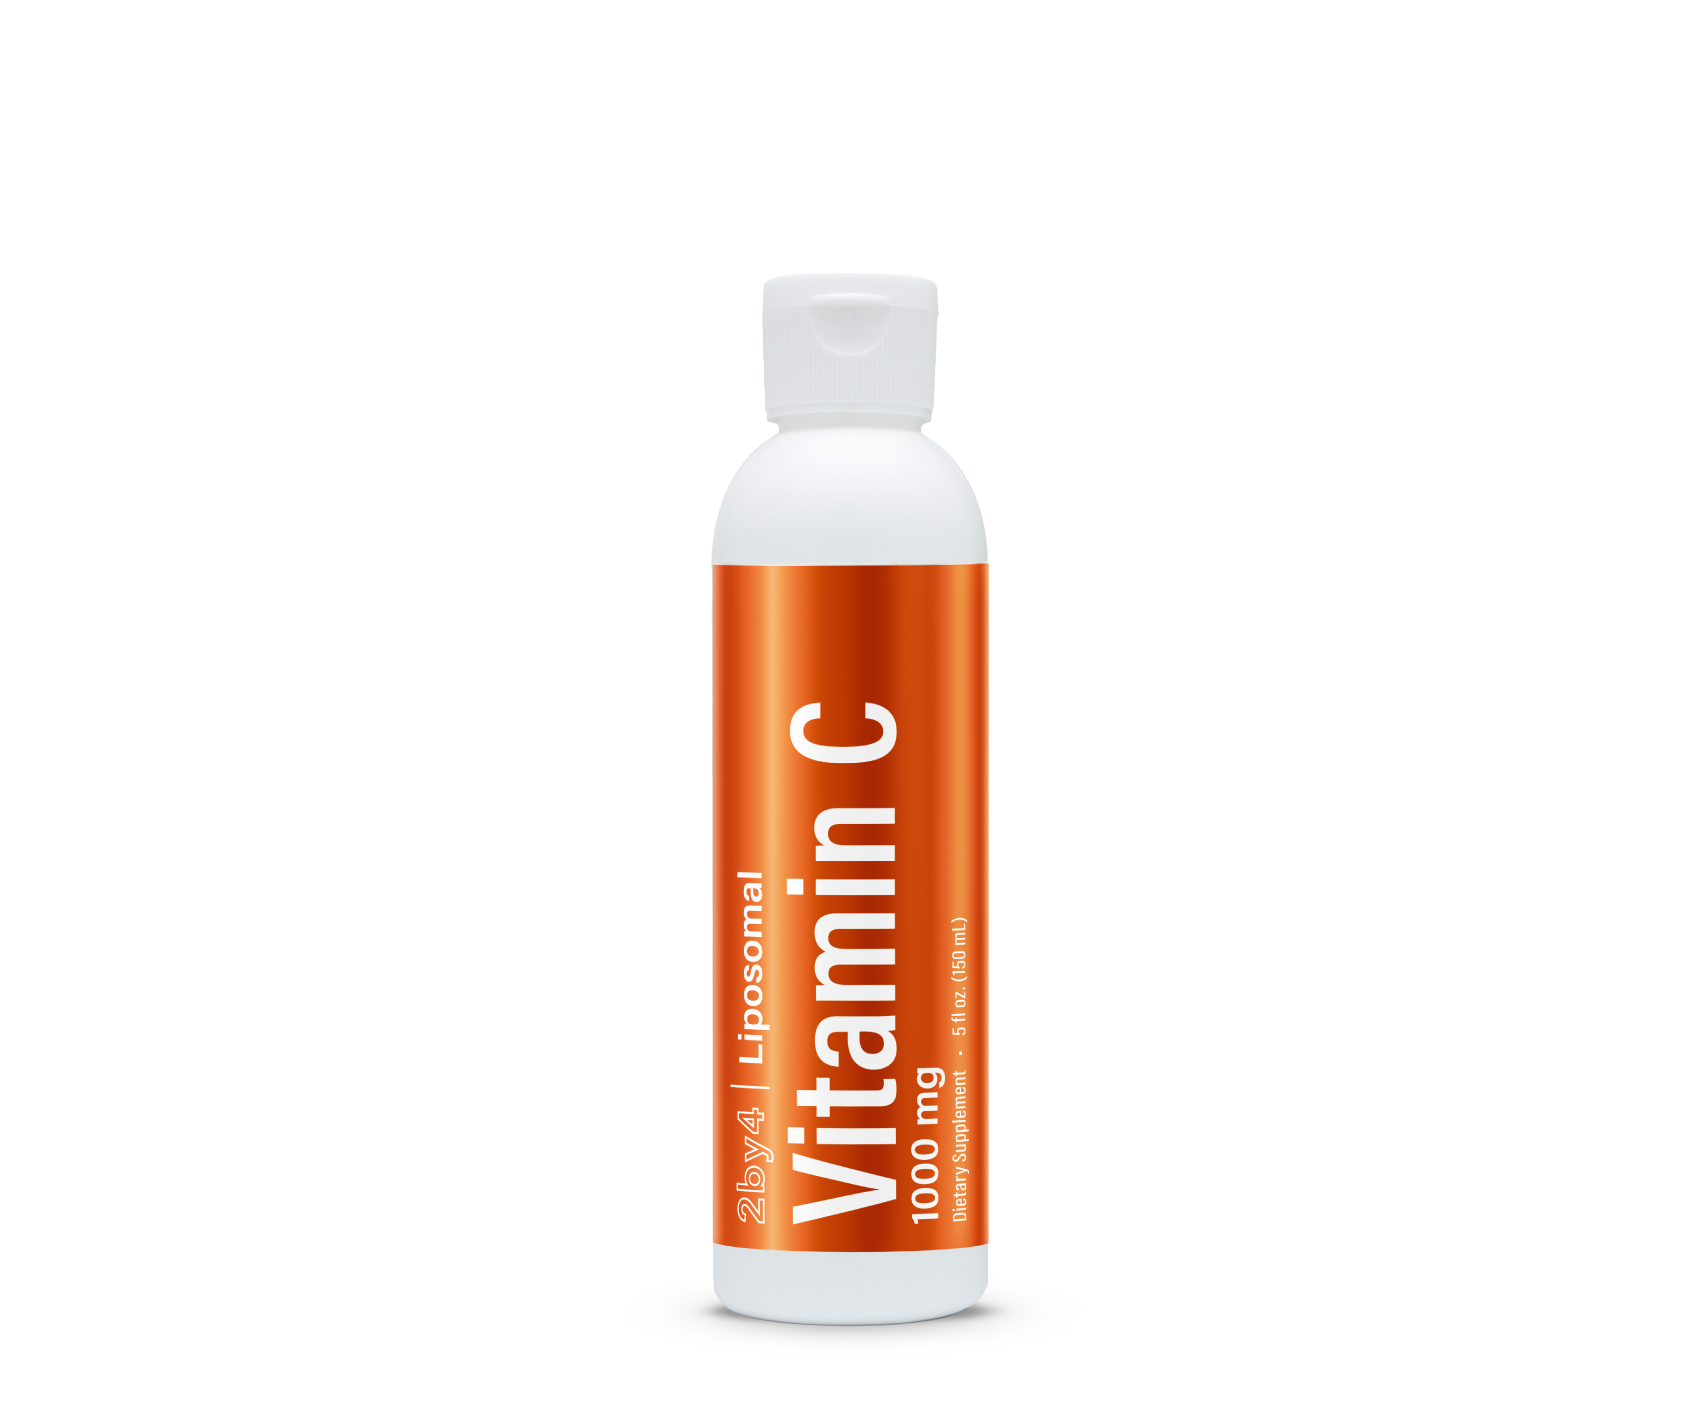 2by4 Liposomal Vitamin C - with Nutristack Technology